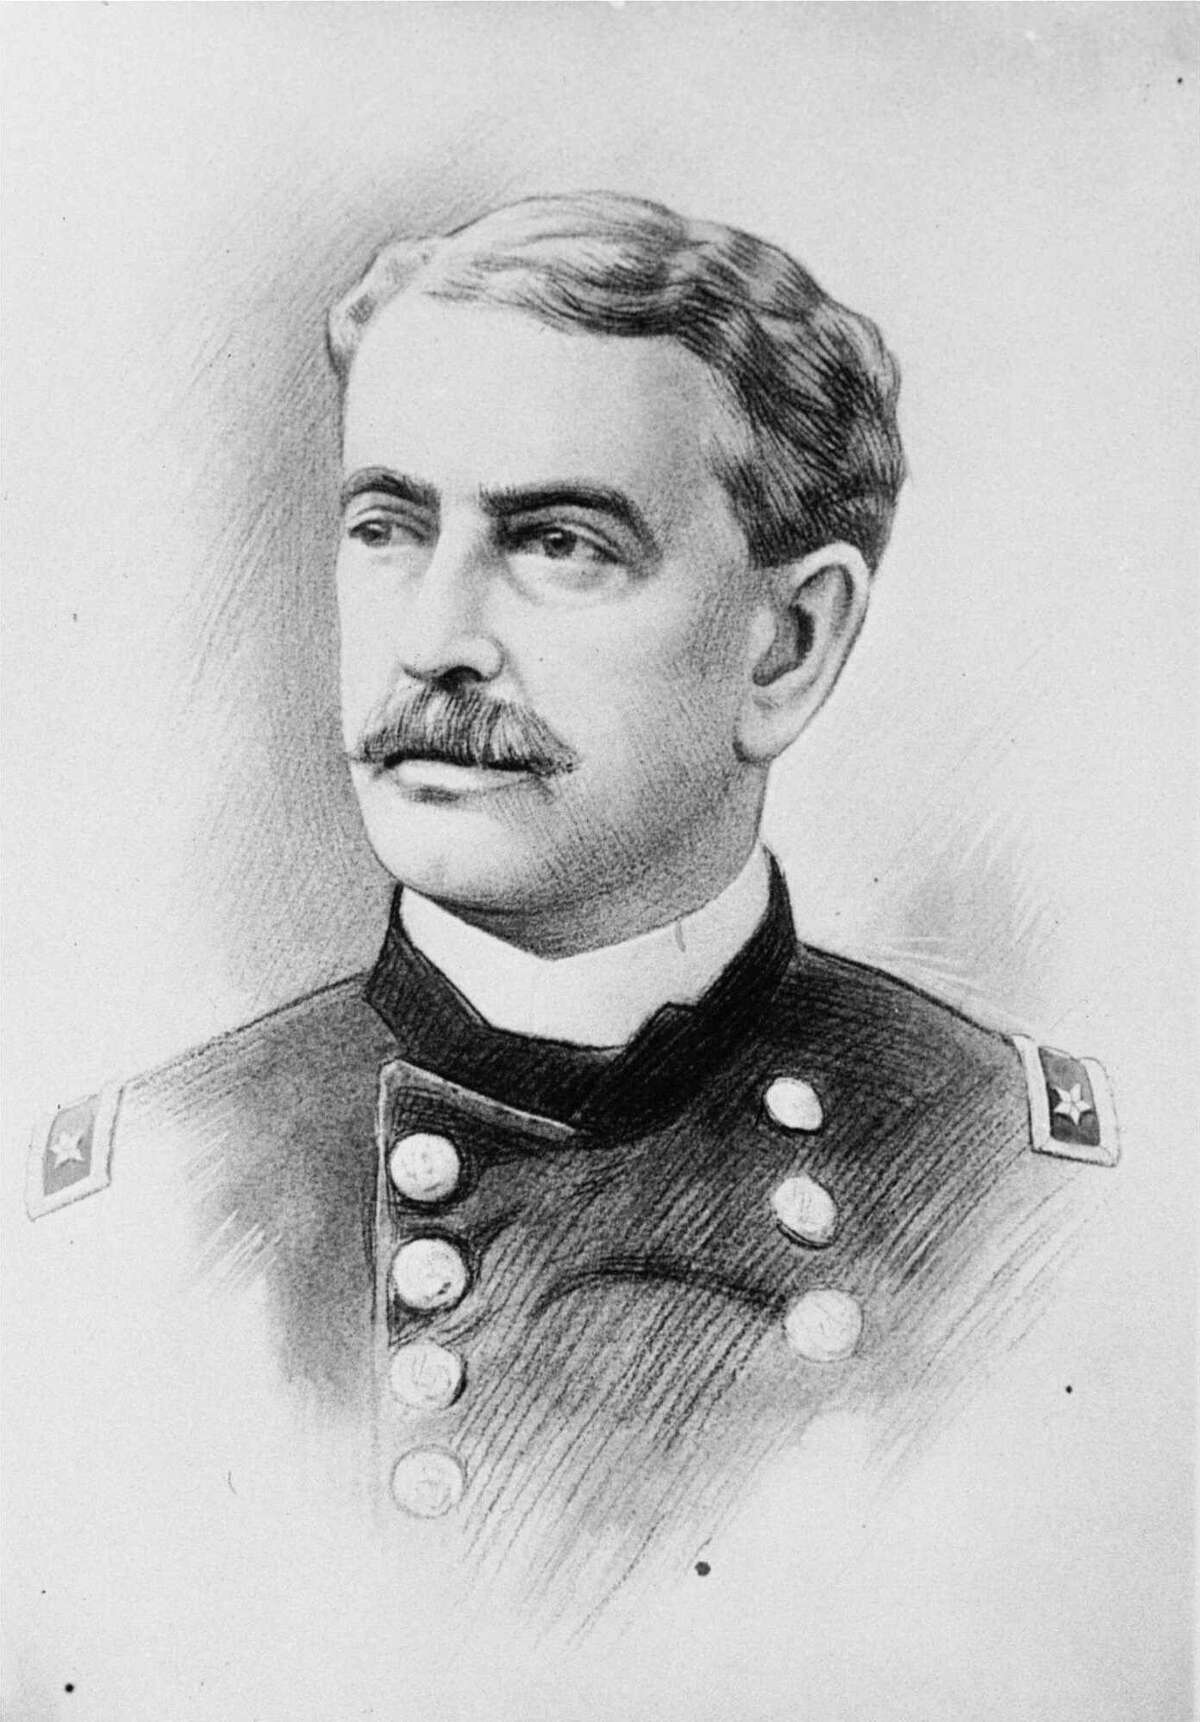 Ballston Spa Abner Doubleday Civil War Union major general who fired the first shot in defense of Fort Sumter, long credited (later debunked) with inventing the game of baseball